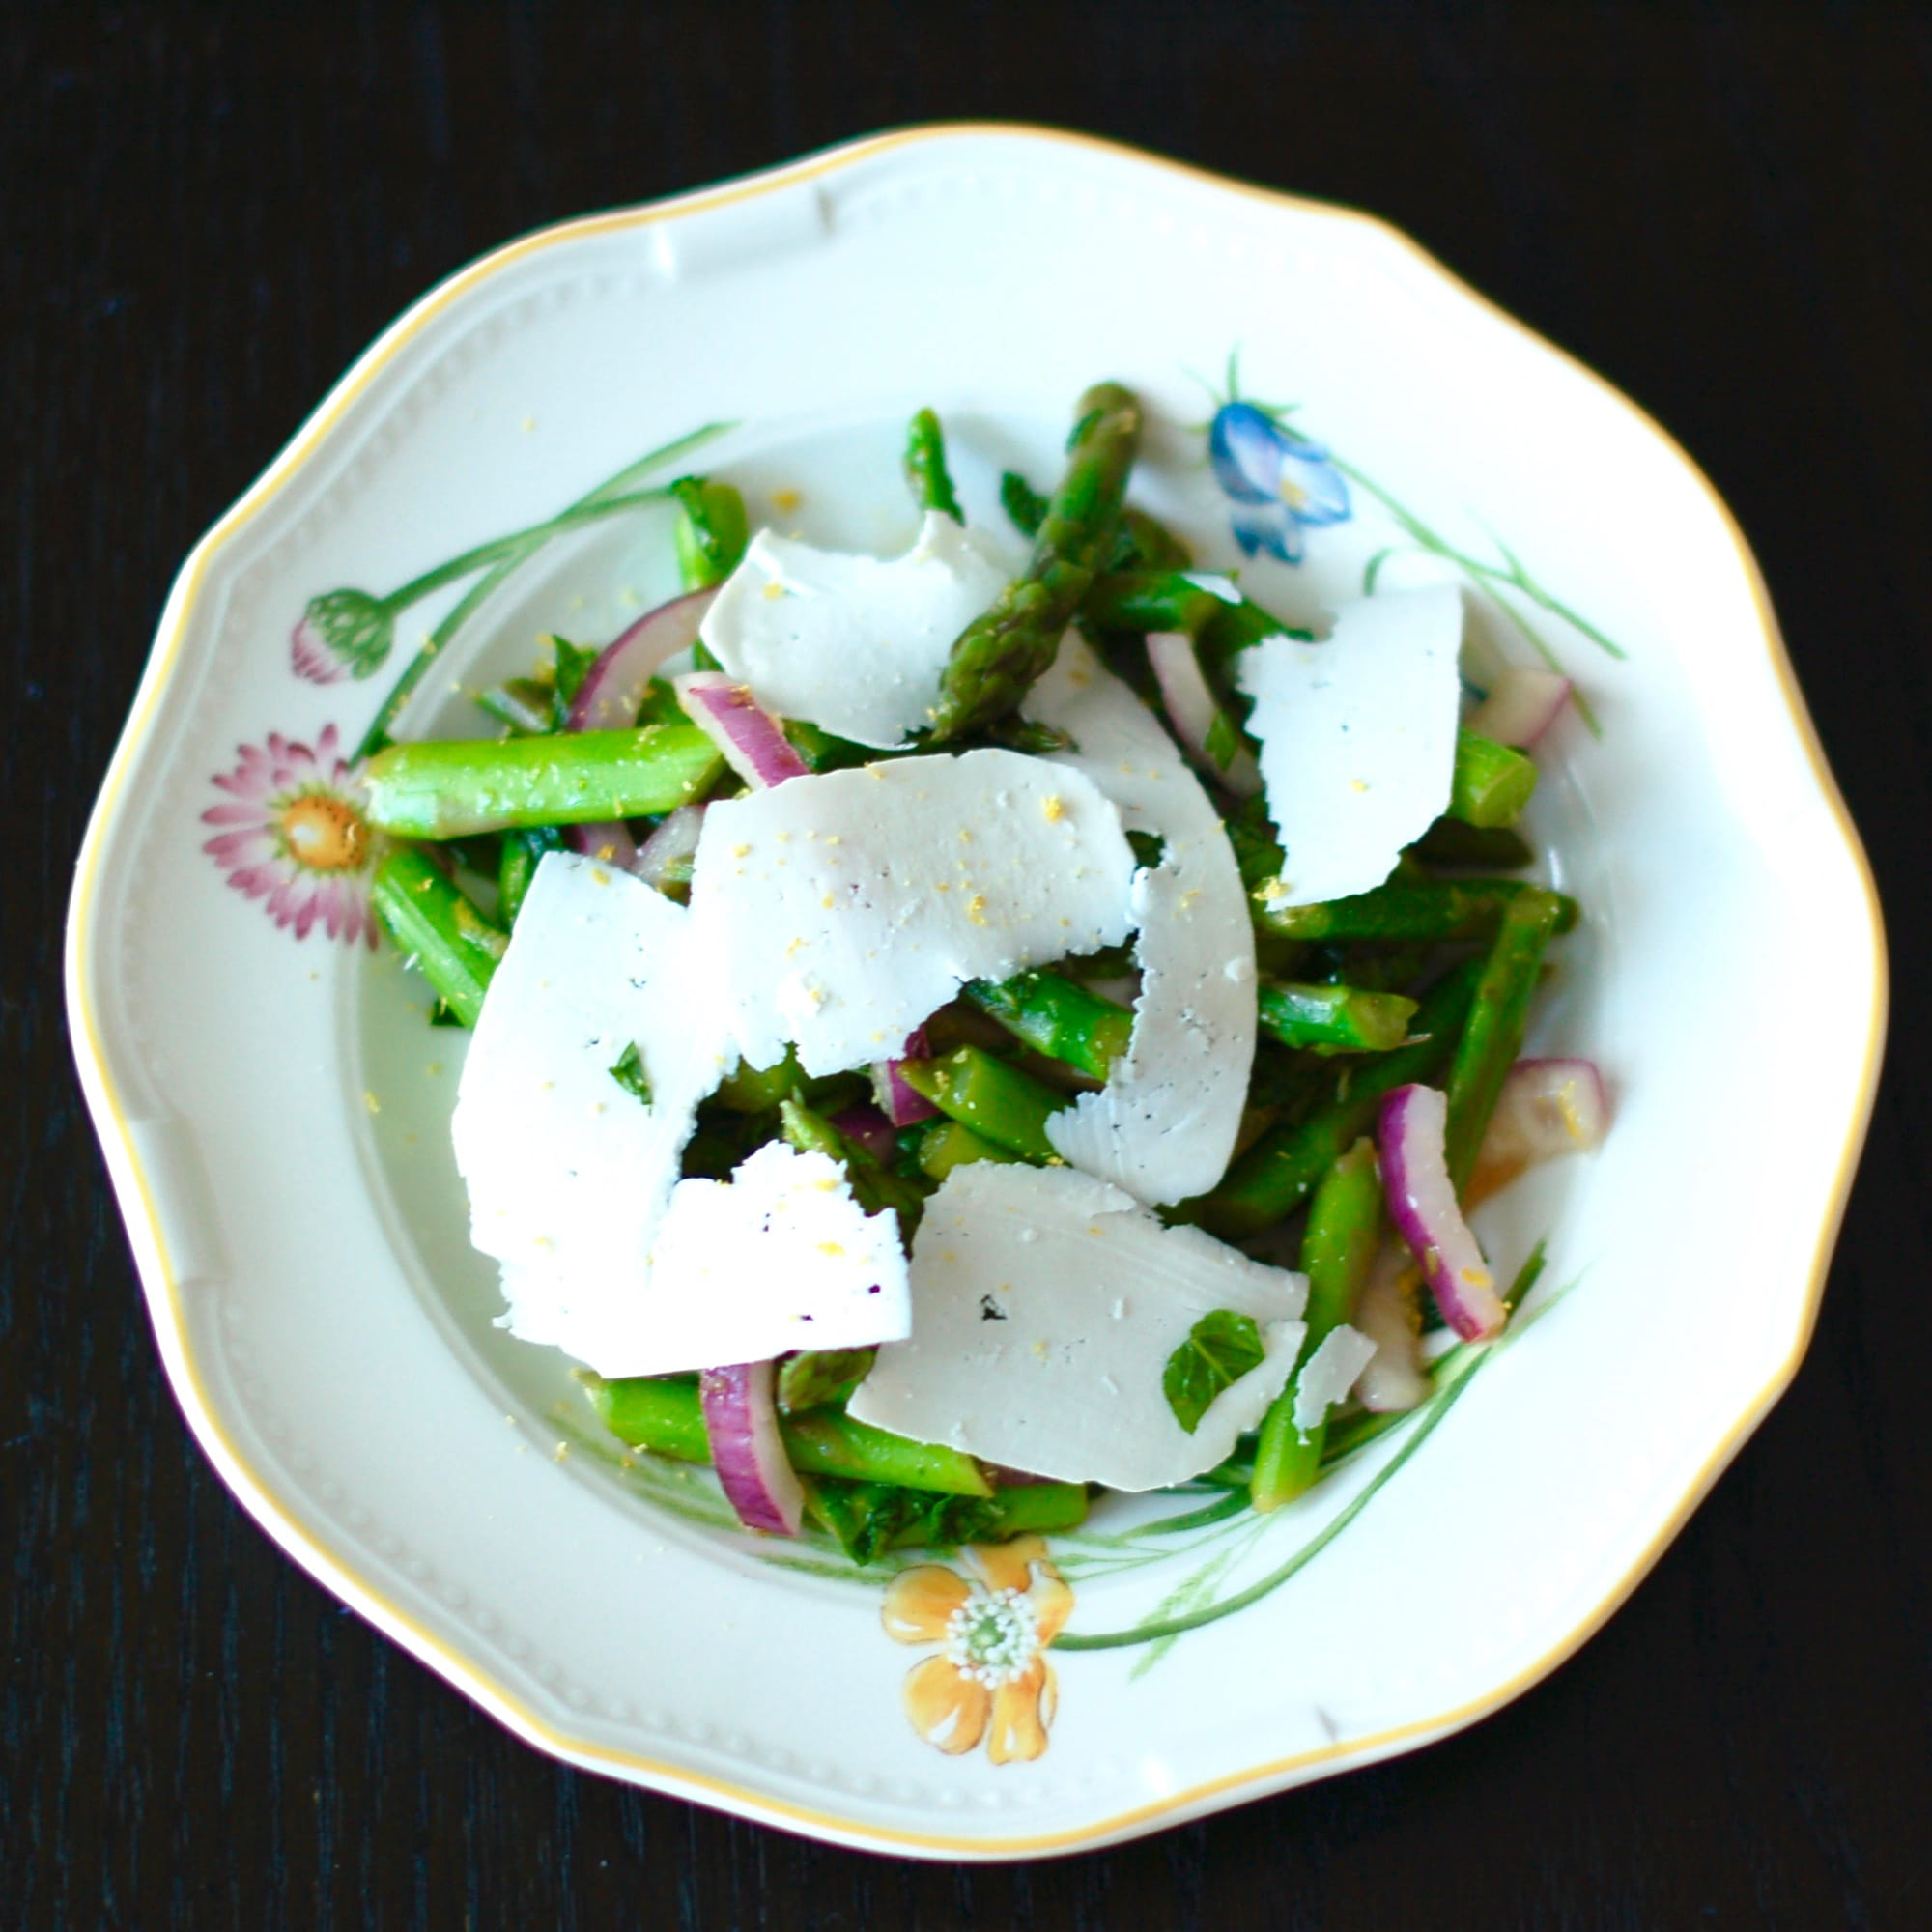 Earthy asparagus is tossed with crisp red onions, refreshing mint, zesty lemon, and salty ricotta salata cheese in this Asparagus Mint Salad that will get you in the spirit of spring and wake up your taste buds. Get the vegetarian and gluten-free recipe @jlevinsonrd.